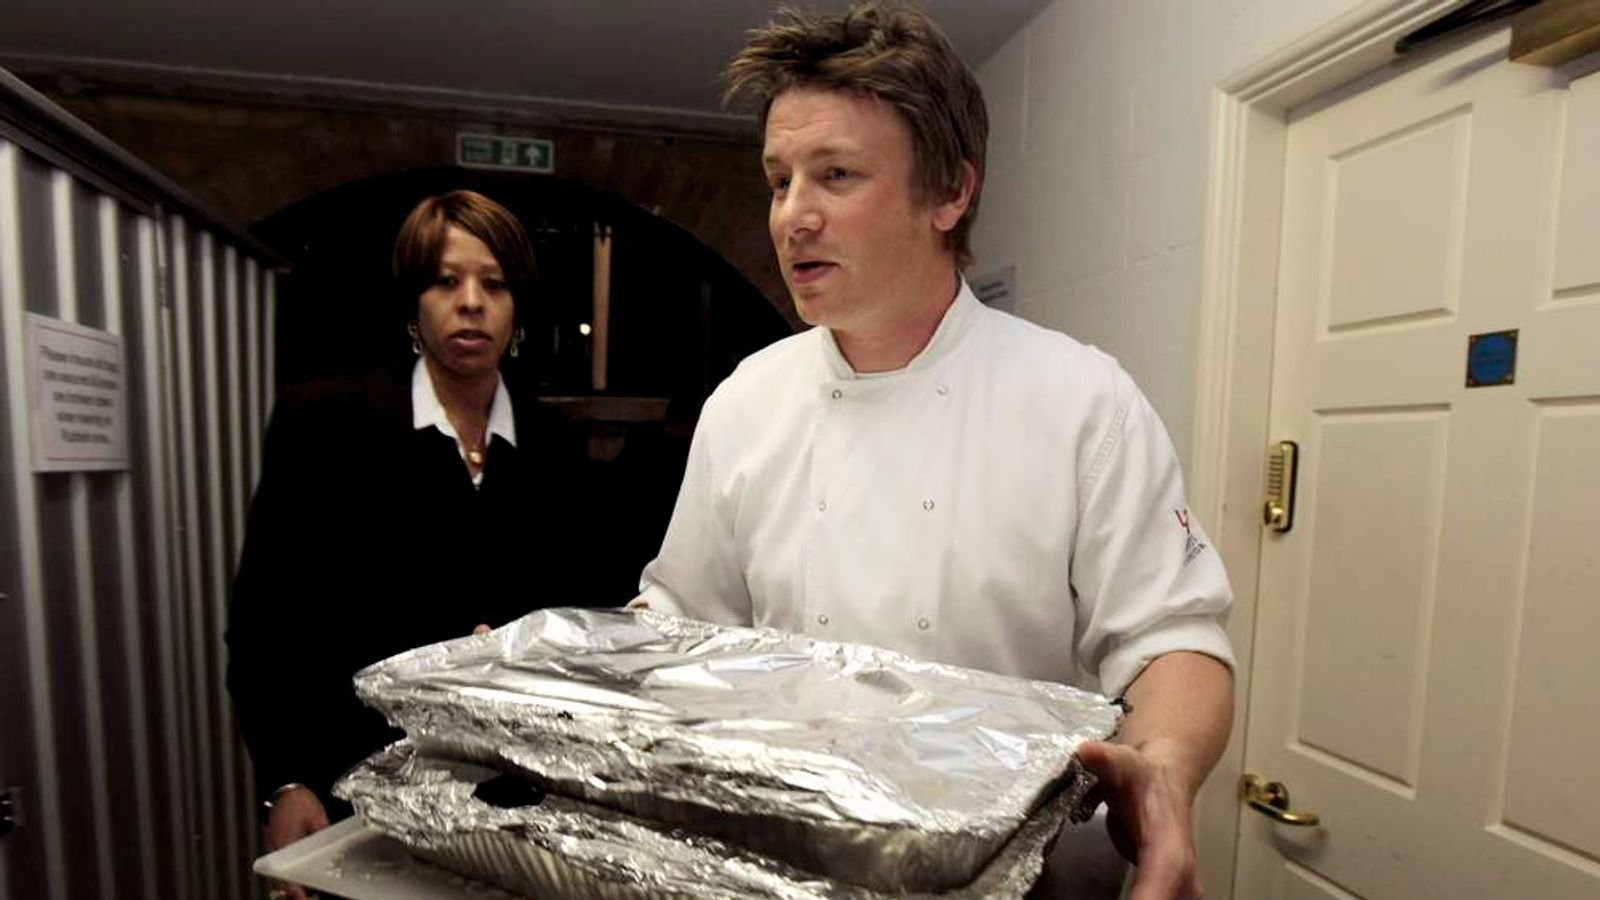 Oliver is no stranger to politics - in 2009 he prepared a meal for G20 leaders at Downing Street